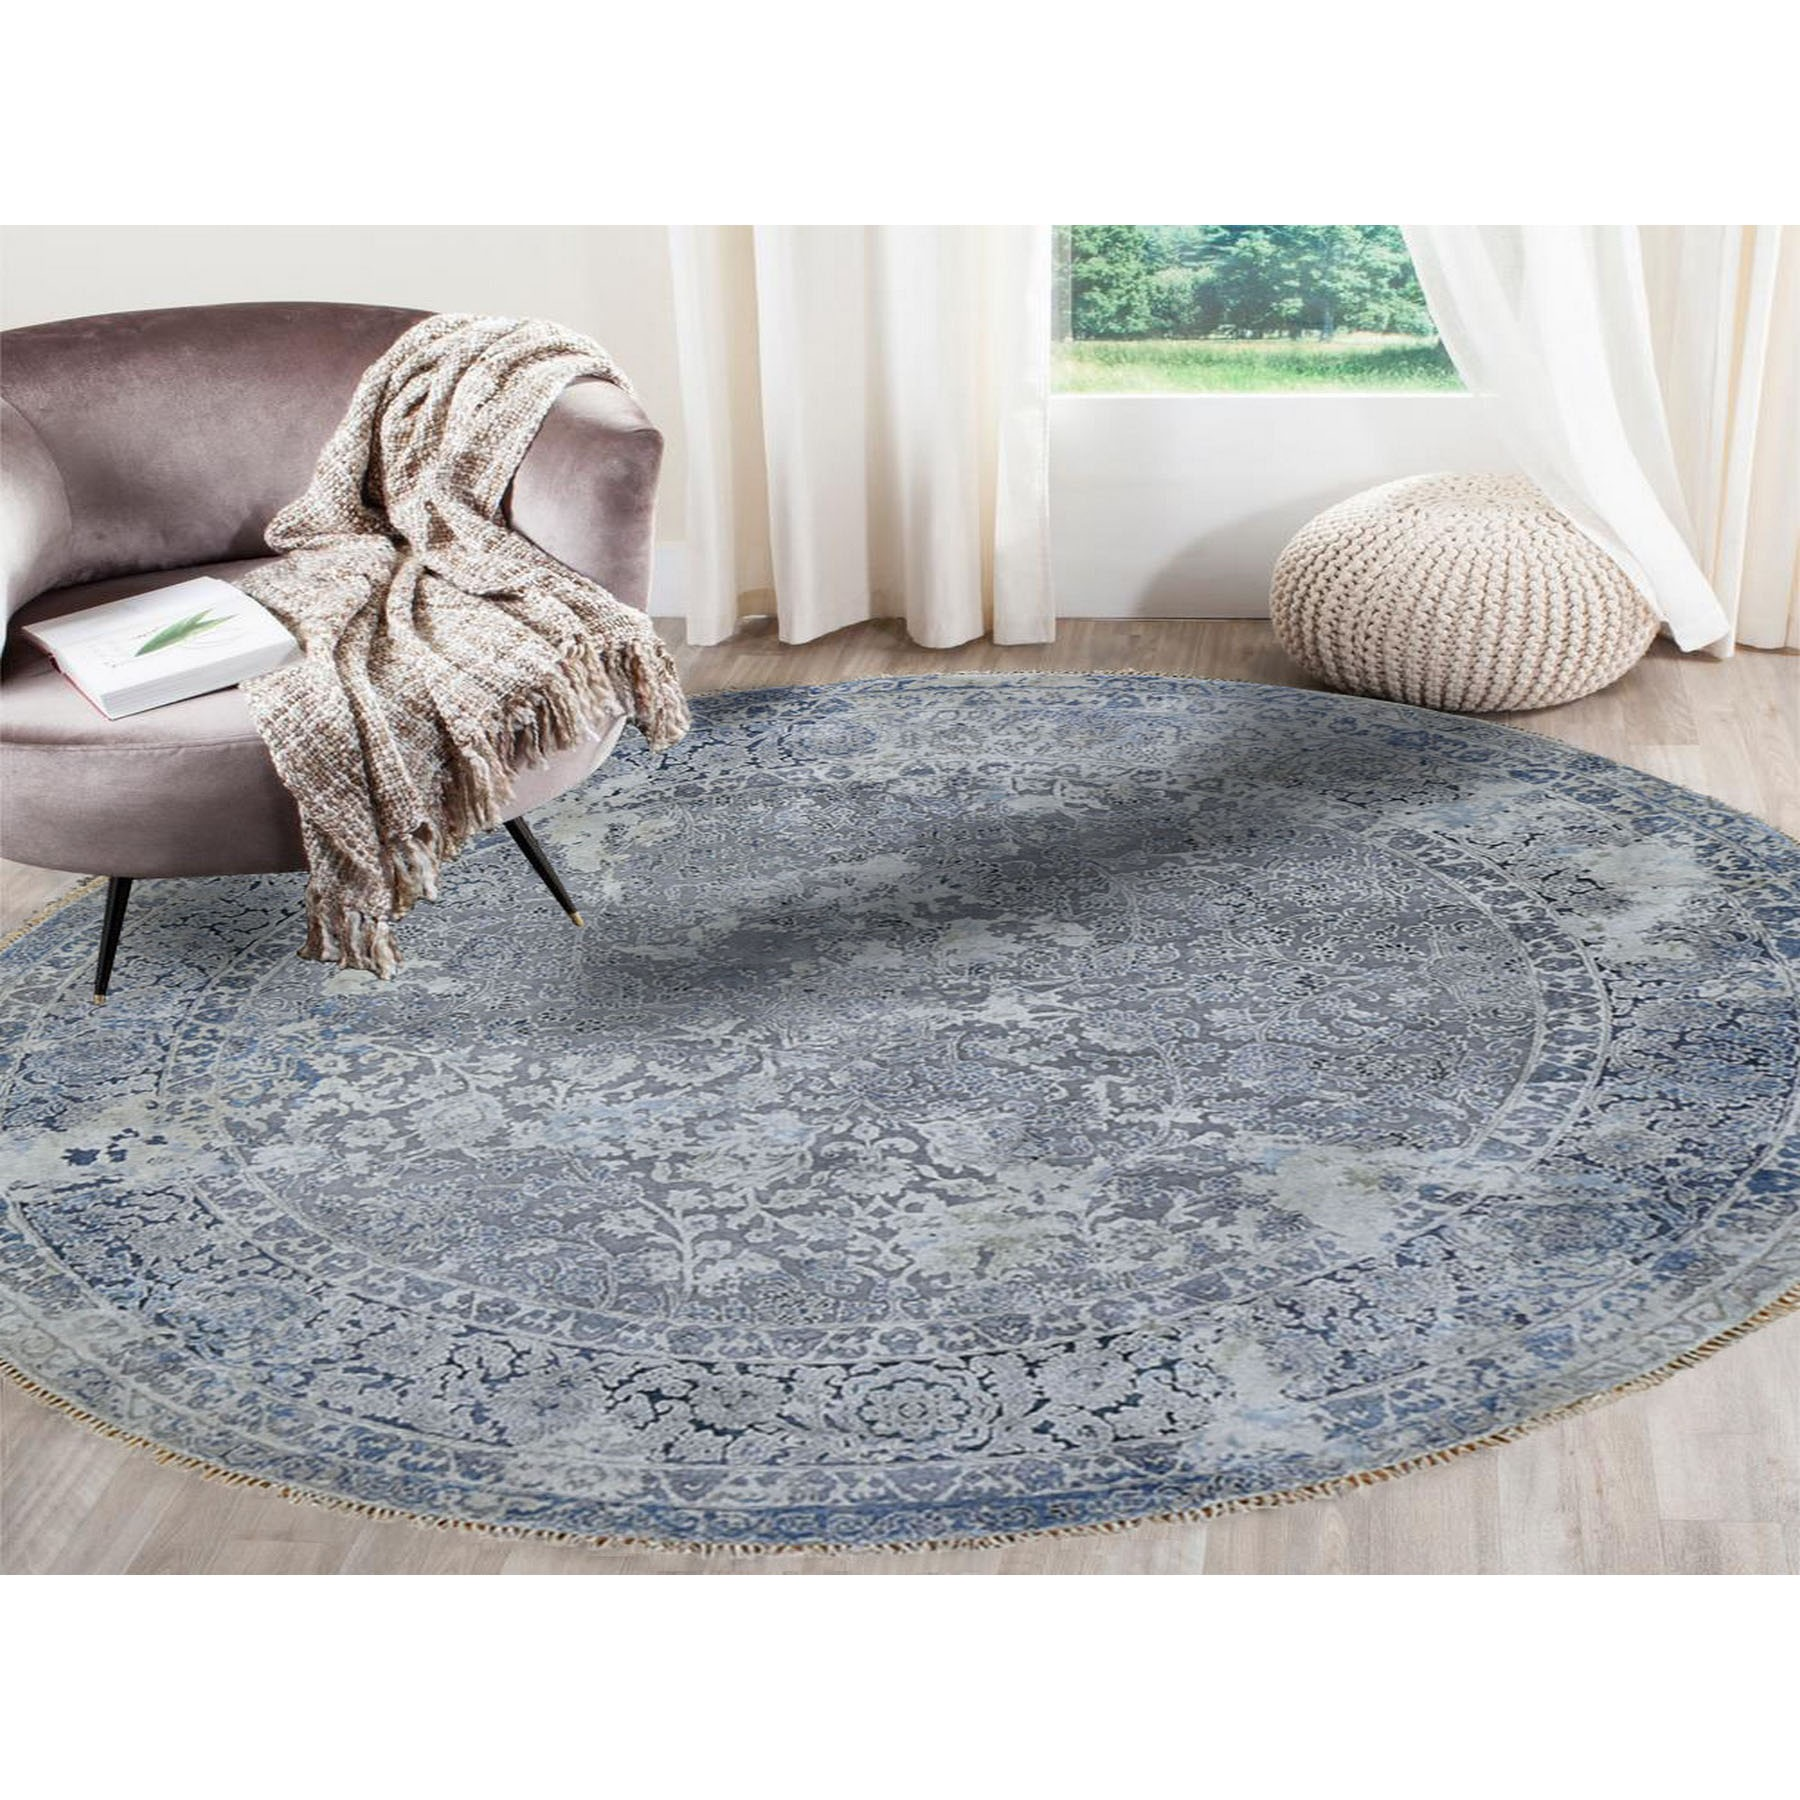 10-x10- Round Broken Persian Design With Pure Silk Hand Knotted Oriental Rug